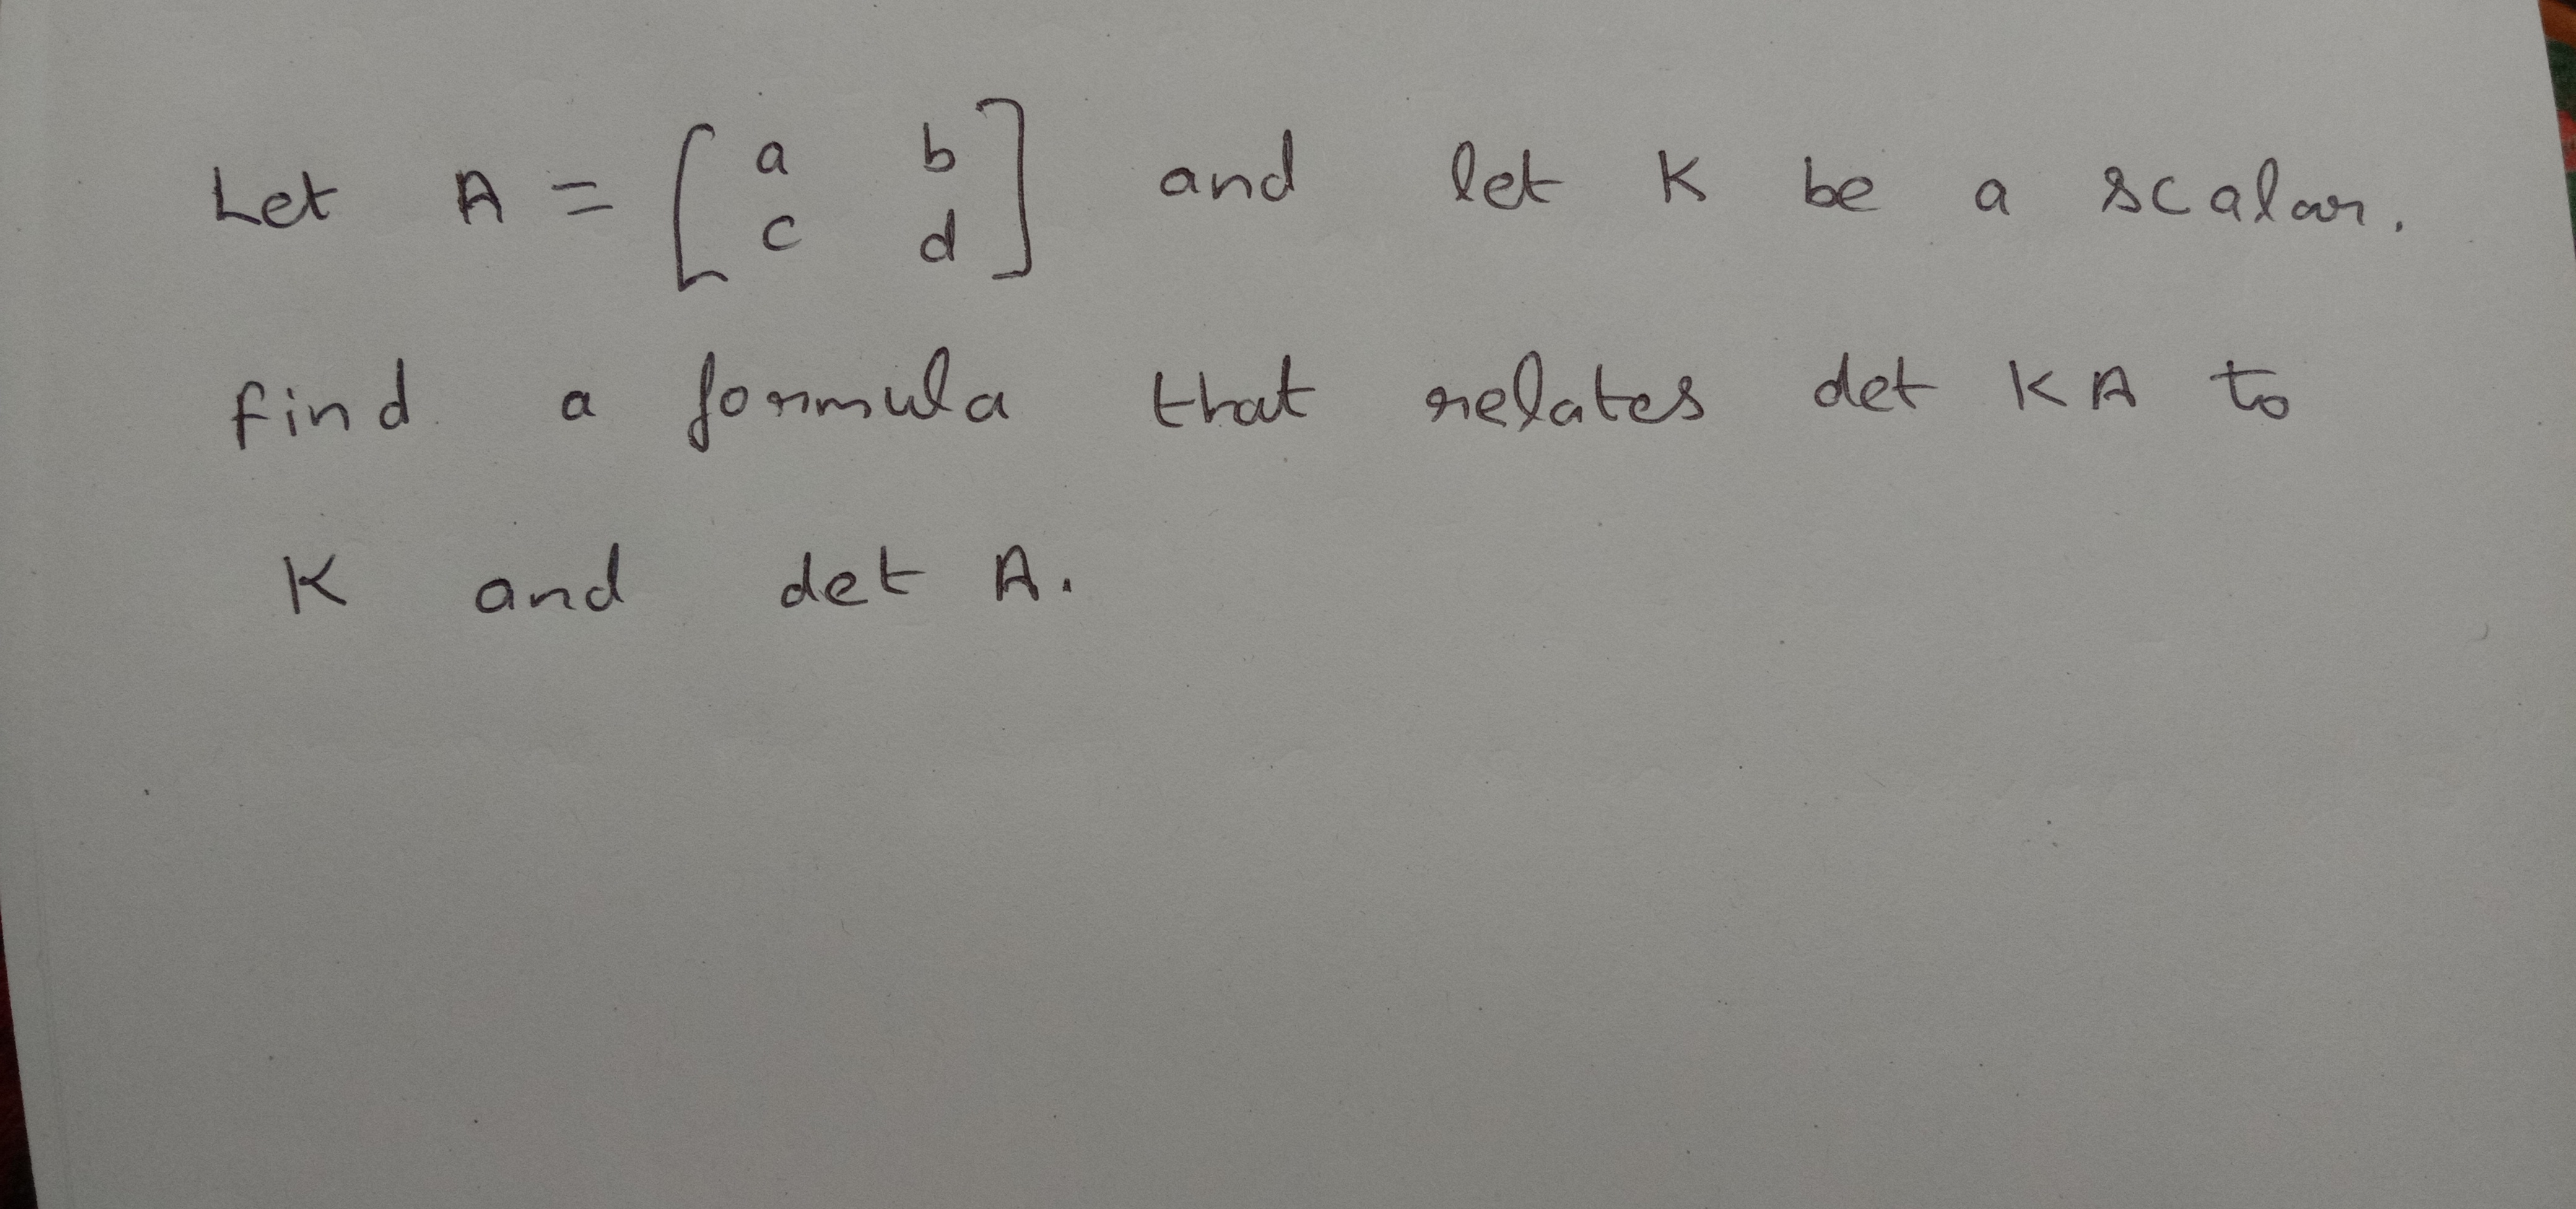 and let K K be a scalar. Let A = fonmula nelates det KA to that find. a and det A.